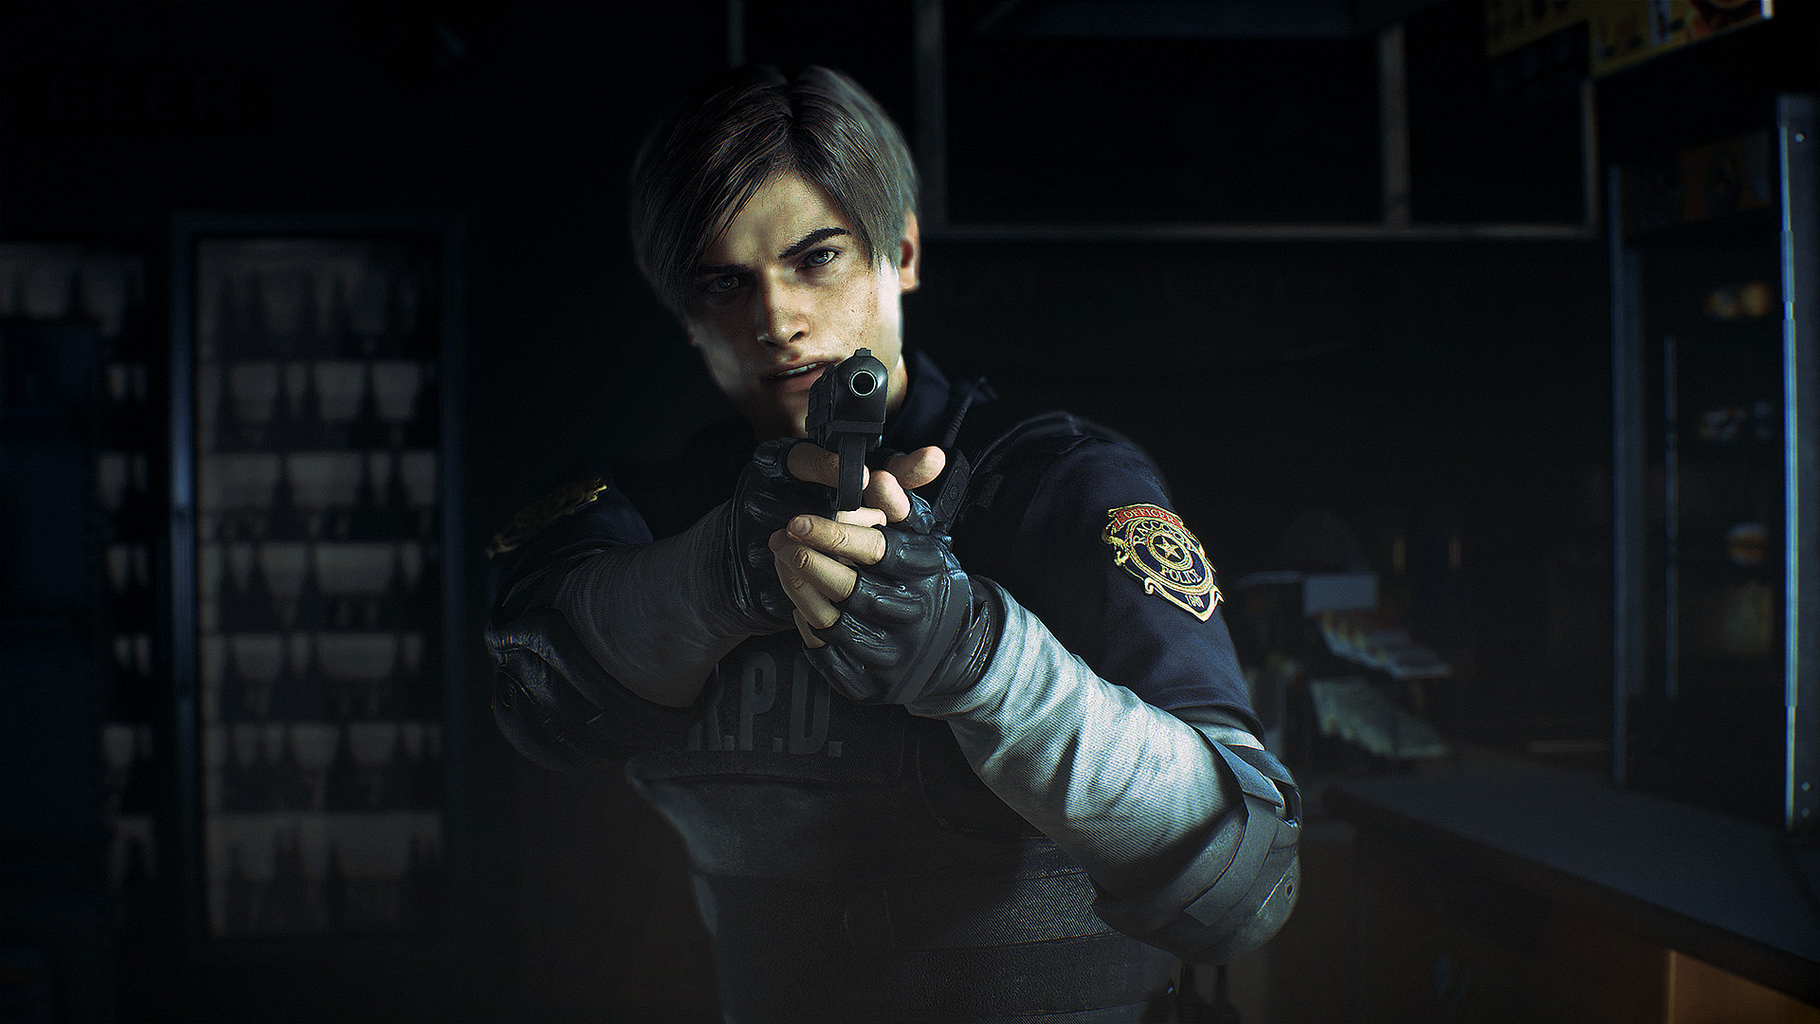 Resident Evil 2 Super Tyrant Boss How To Defeat The Super Tyrant